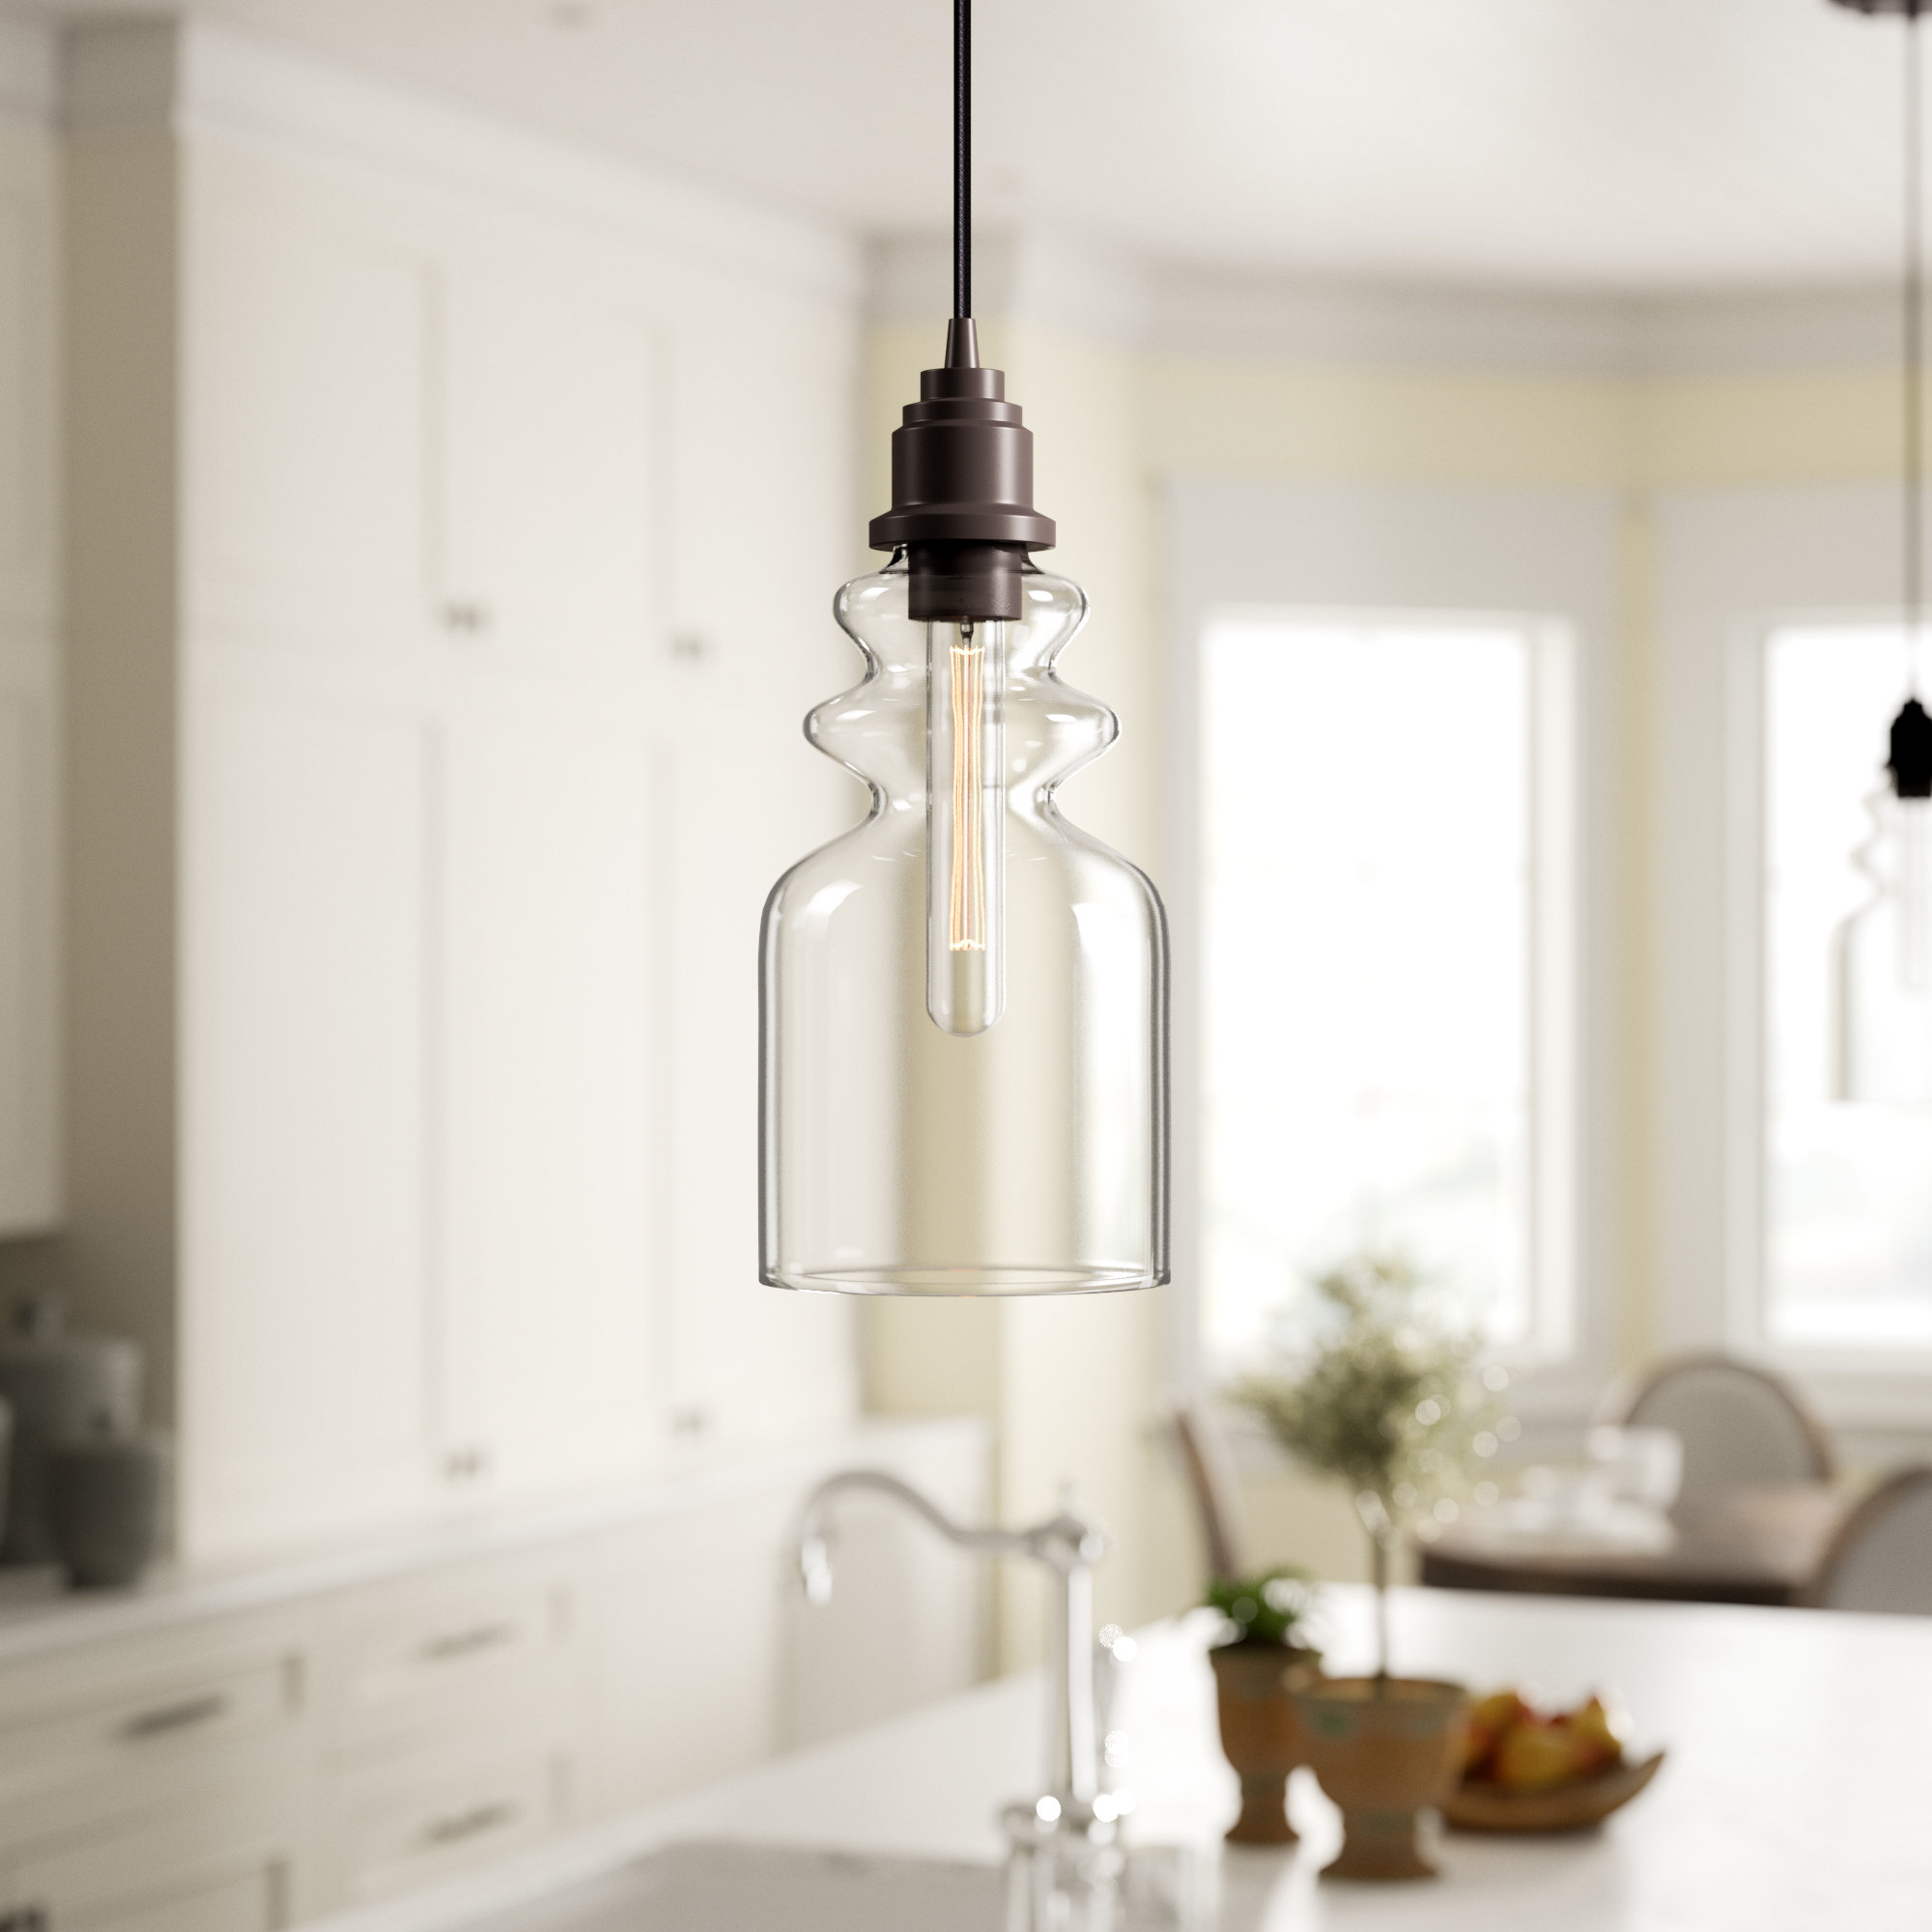 Wyckoff 1 Light Bell Pendant (View 20 of 20)